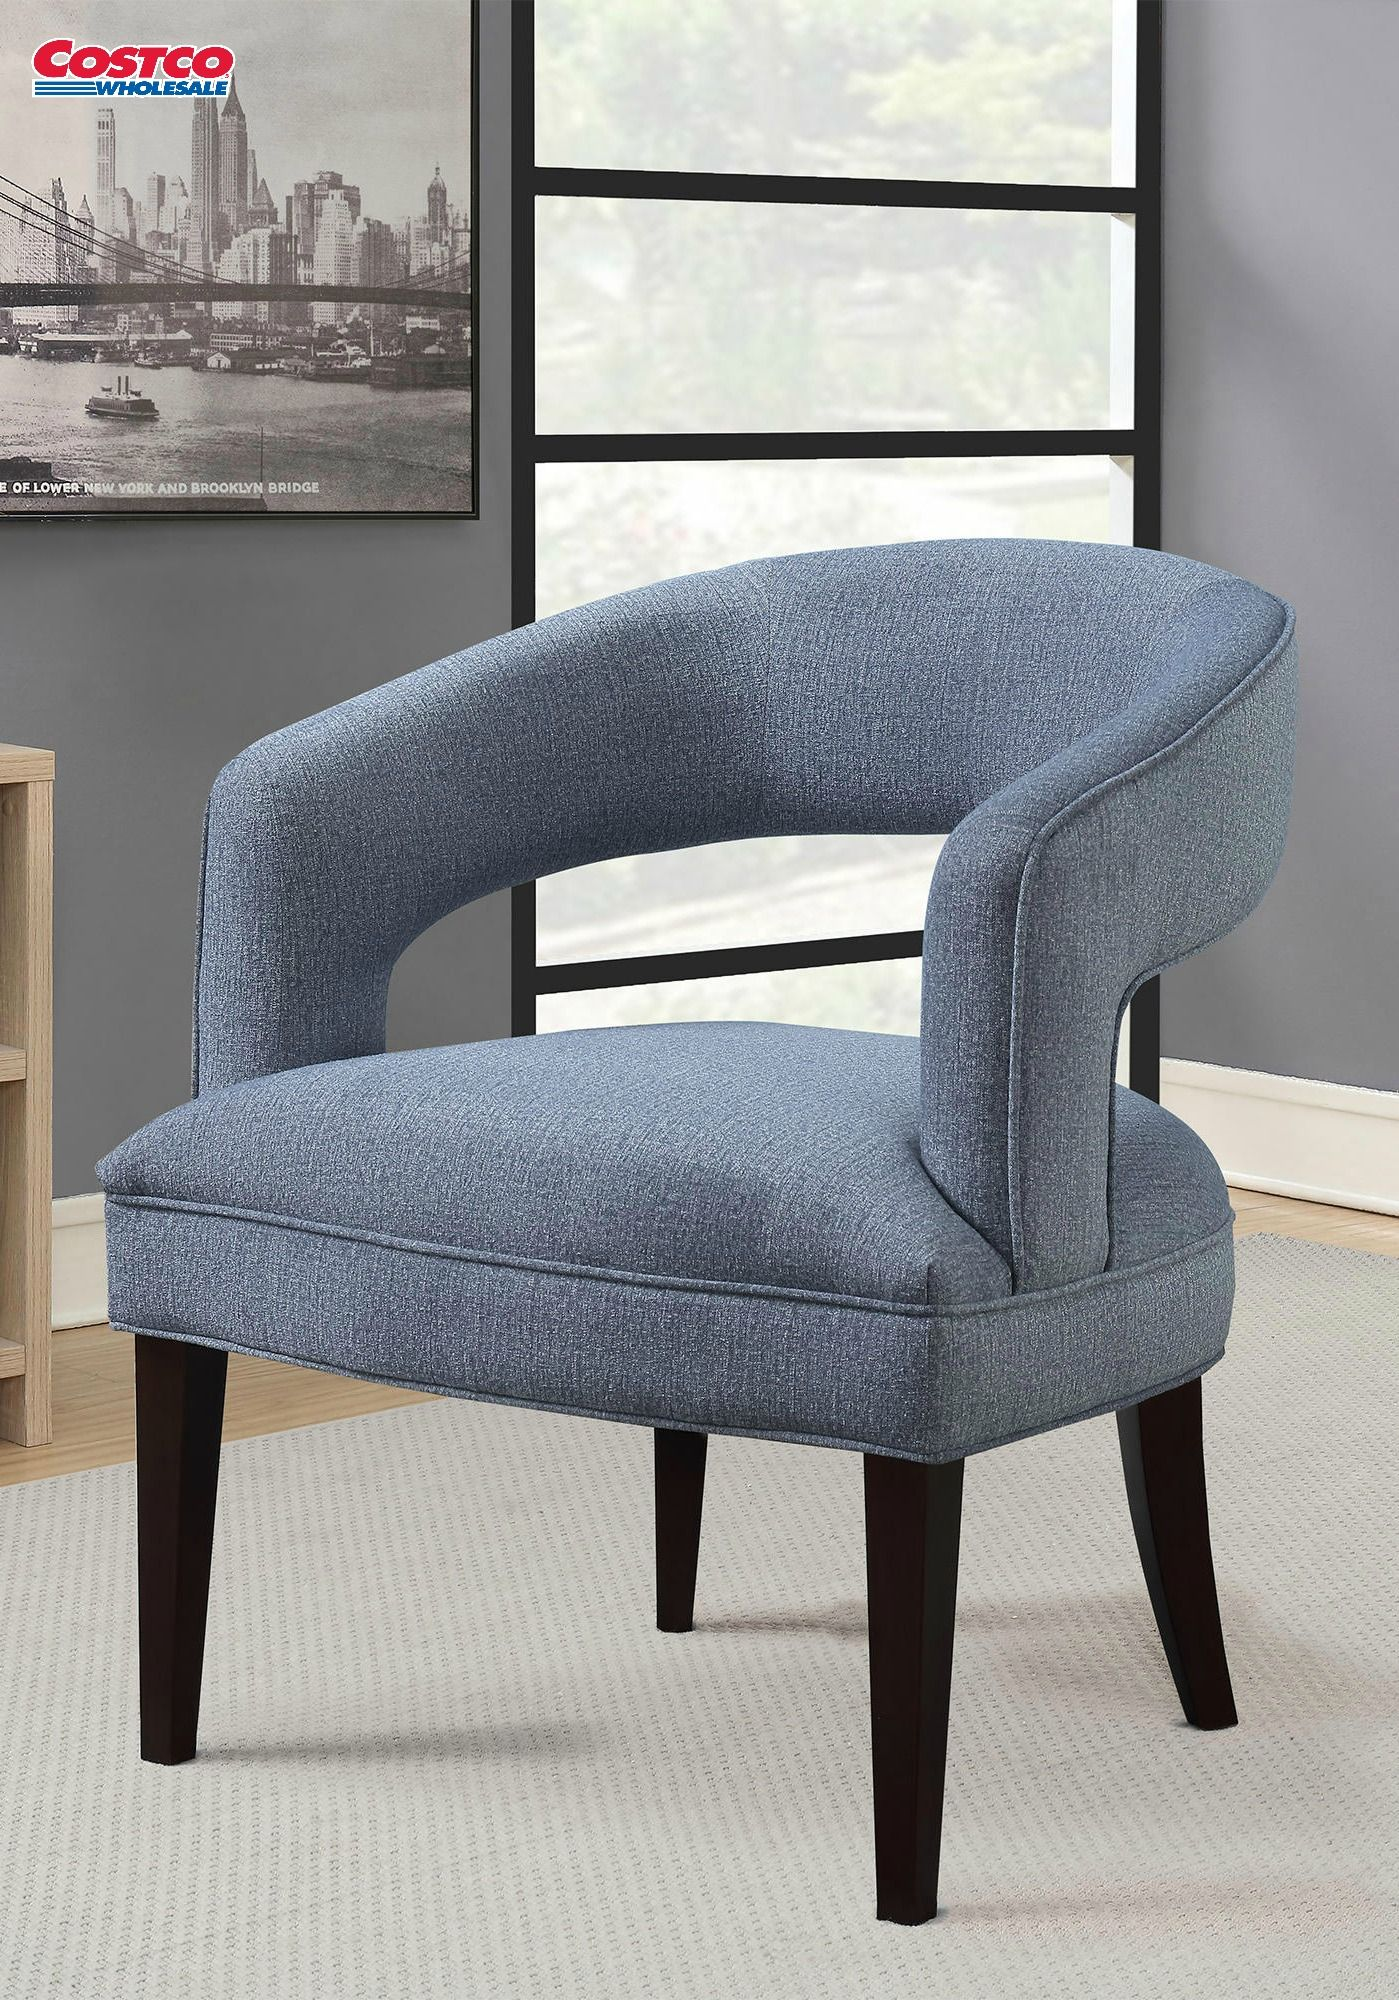 The Design Of The Hans Fabric Accent Chair Adds Style And